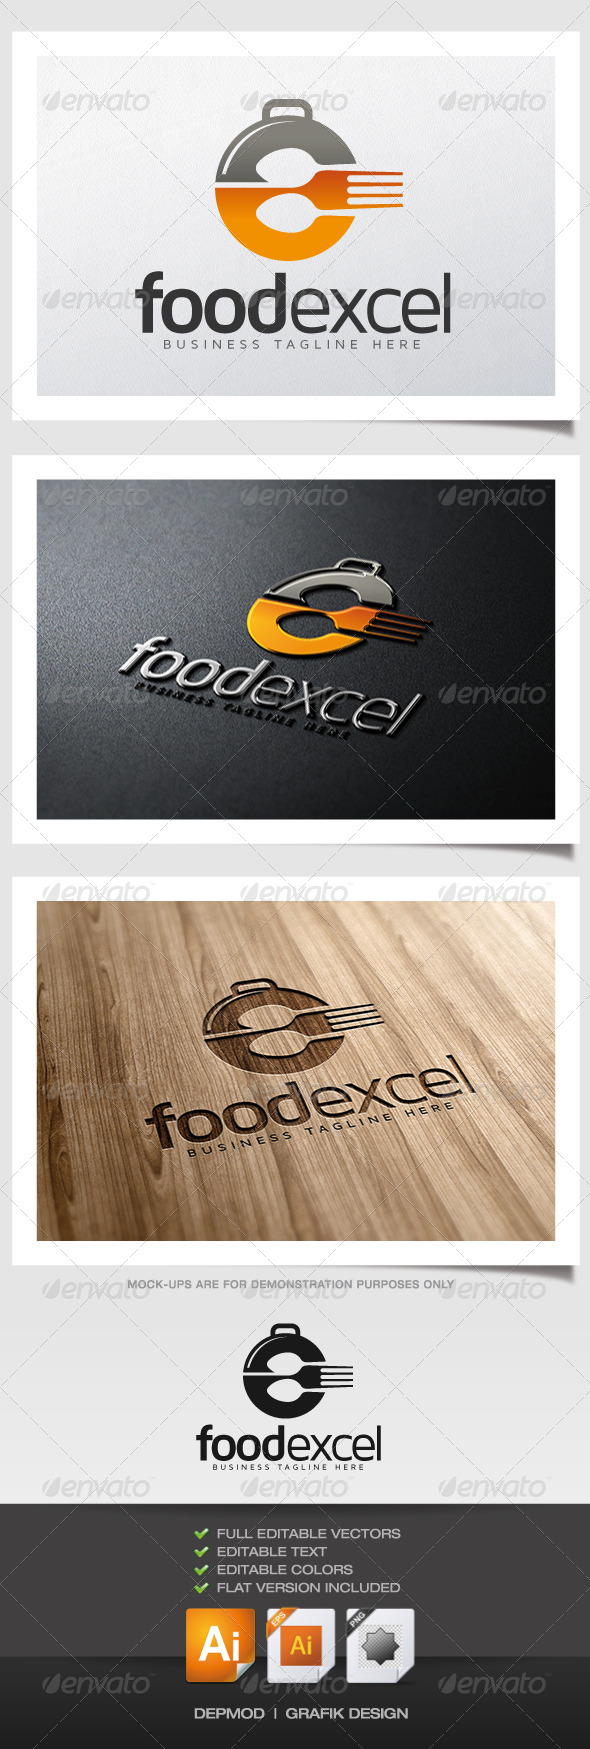 Food Excel Logo